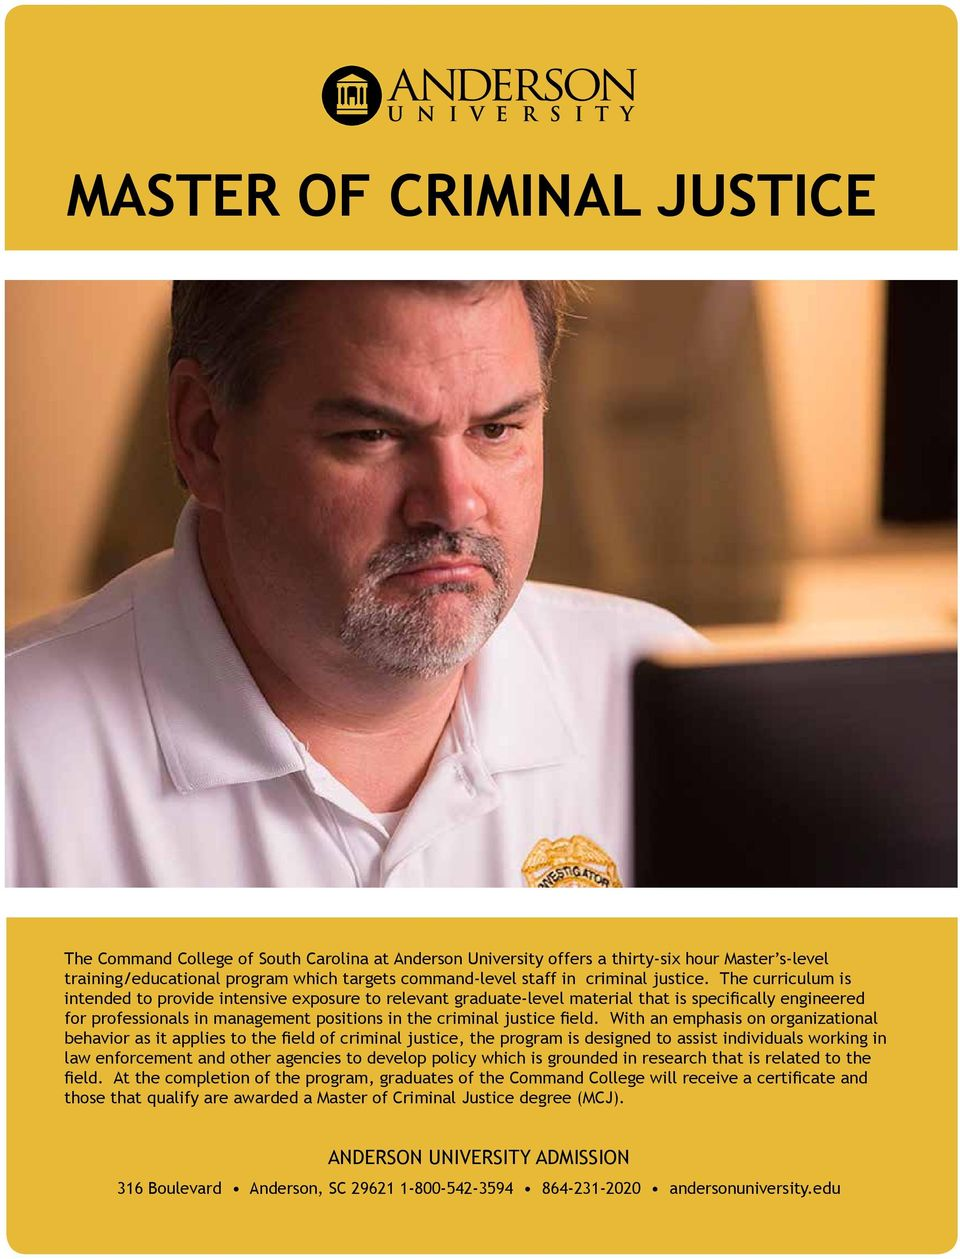 The curriculum is intended to provide intensive exposure to relevant graduate-level material that is specifically engineered for professionals in management positions in the criminal justice field.